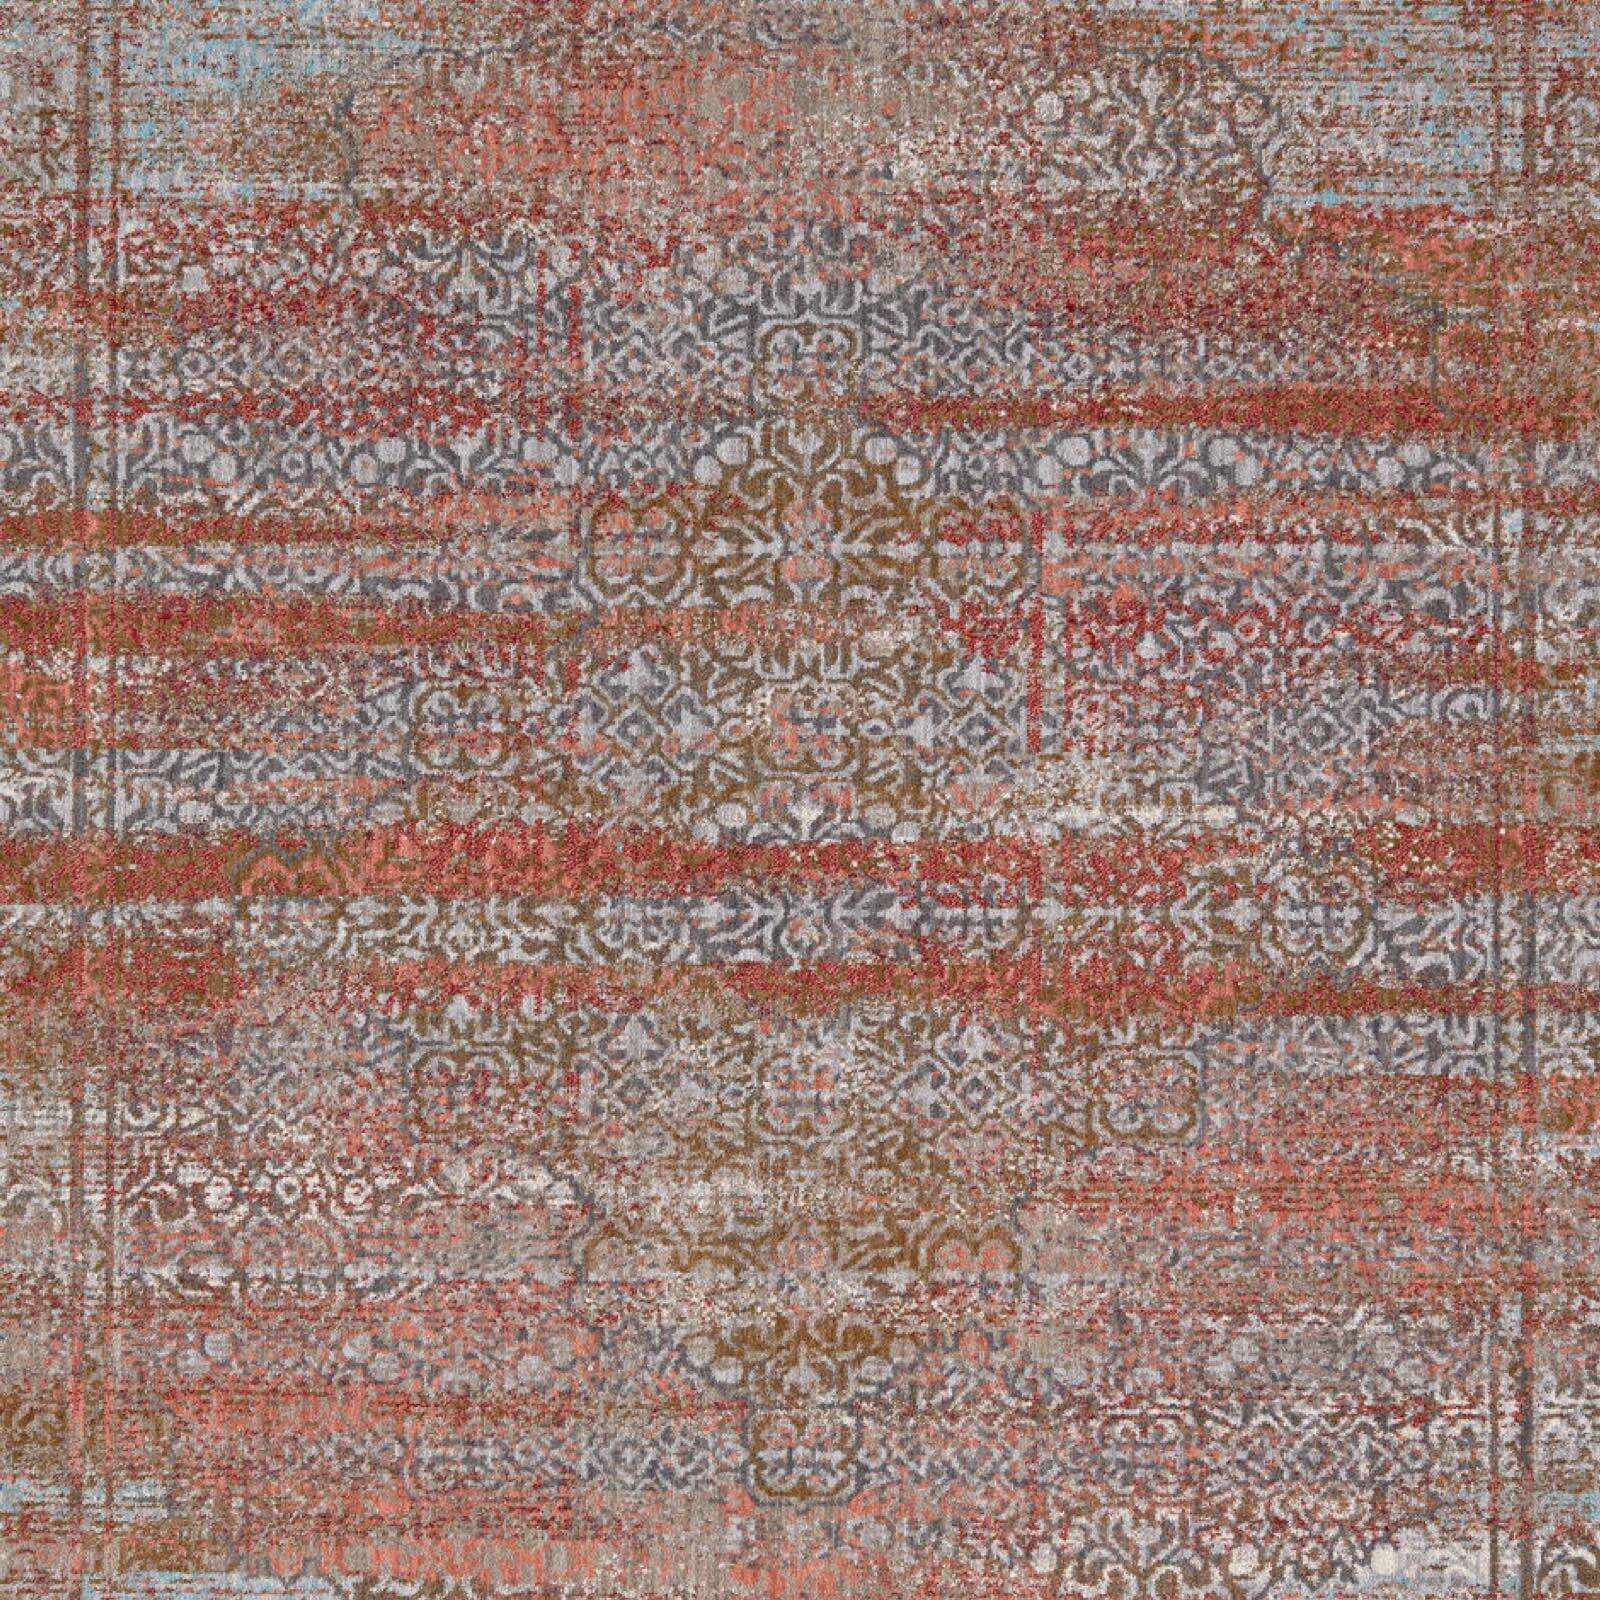 Area Rug | Vic's Carpet & Flooring